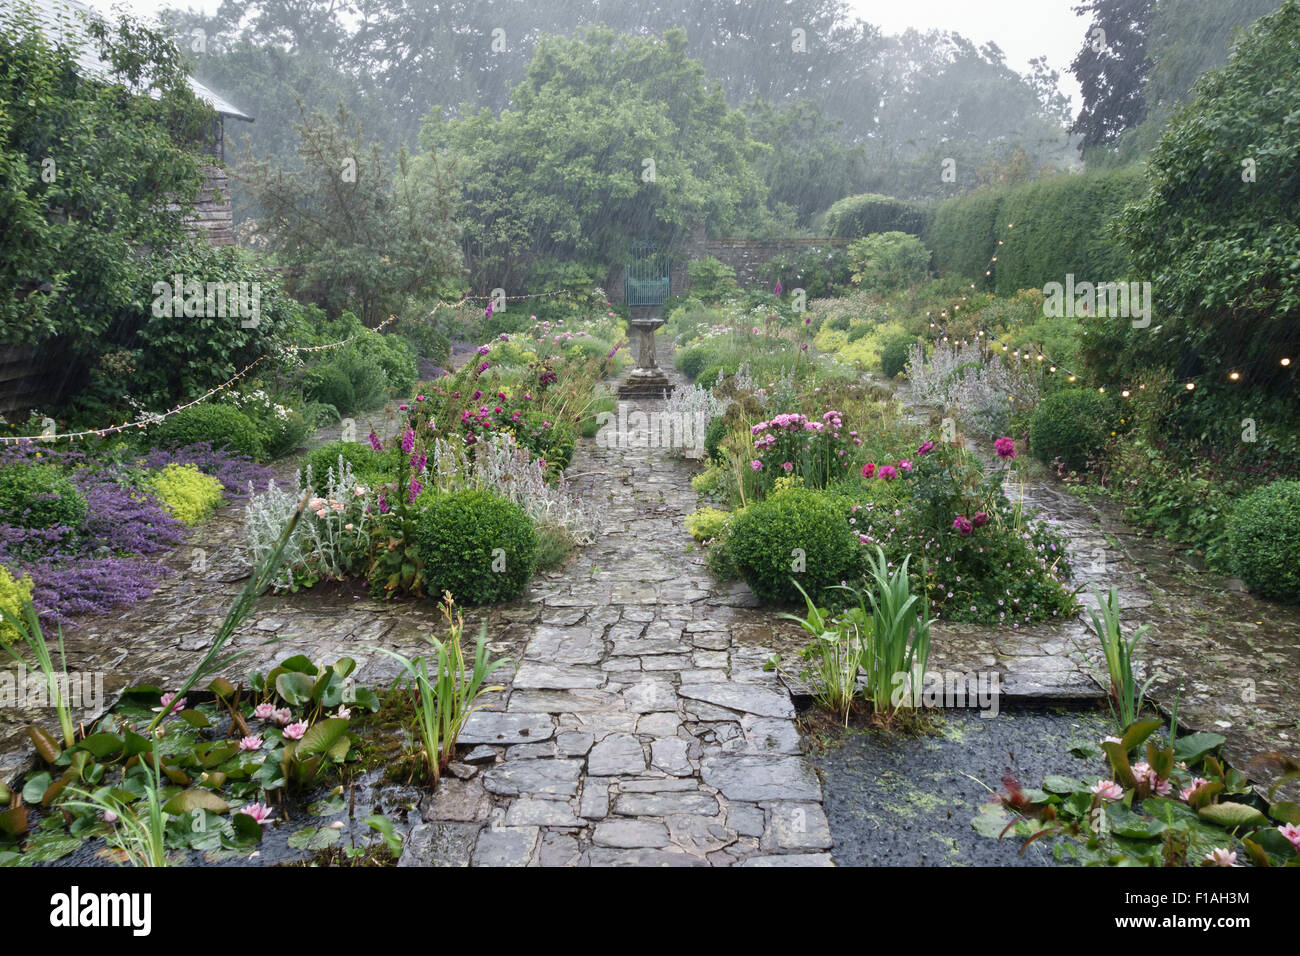 Wales, UK. A garden is drenched by heavy rain during a party in the wet summer of 2015 - Stock Image